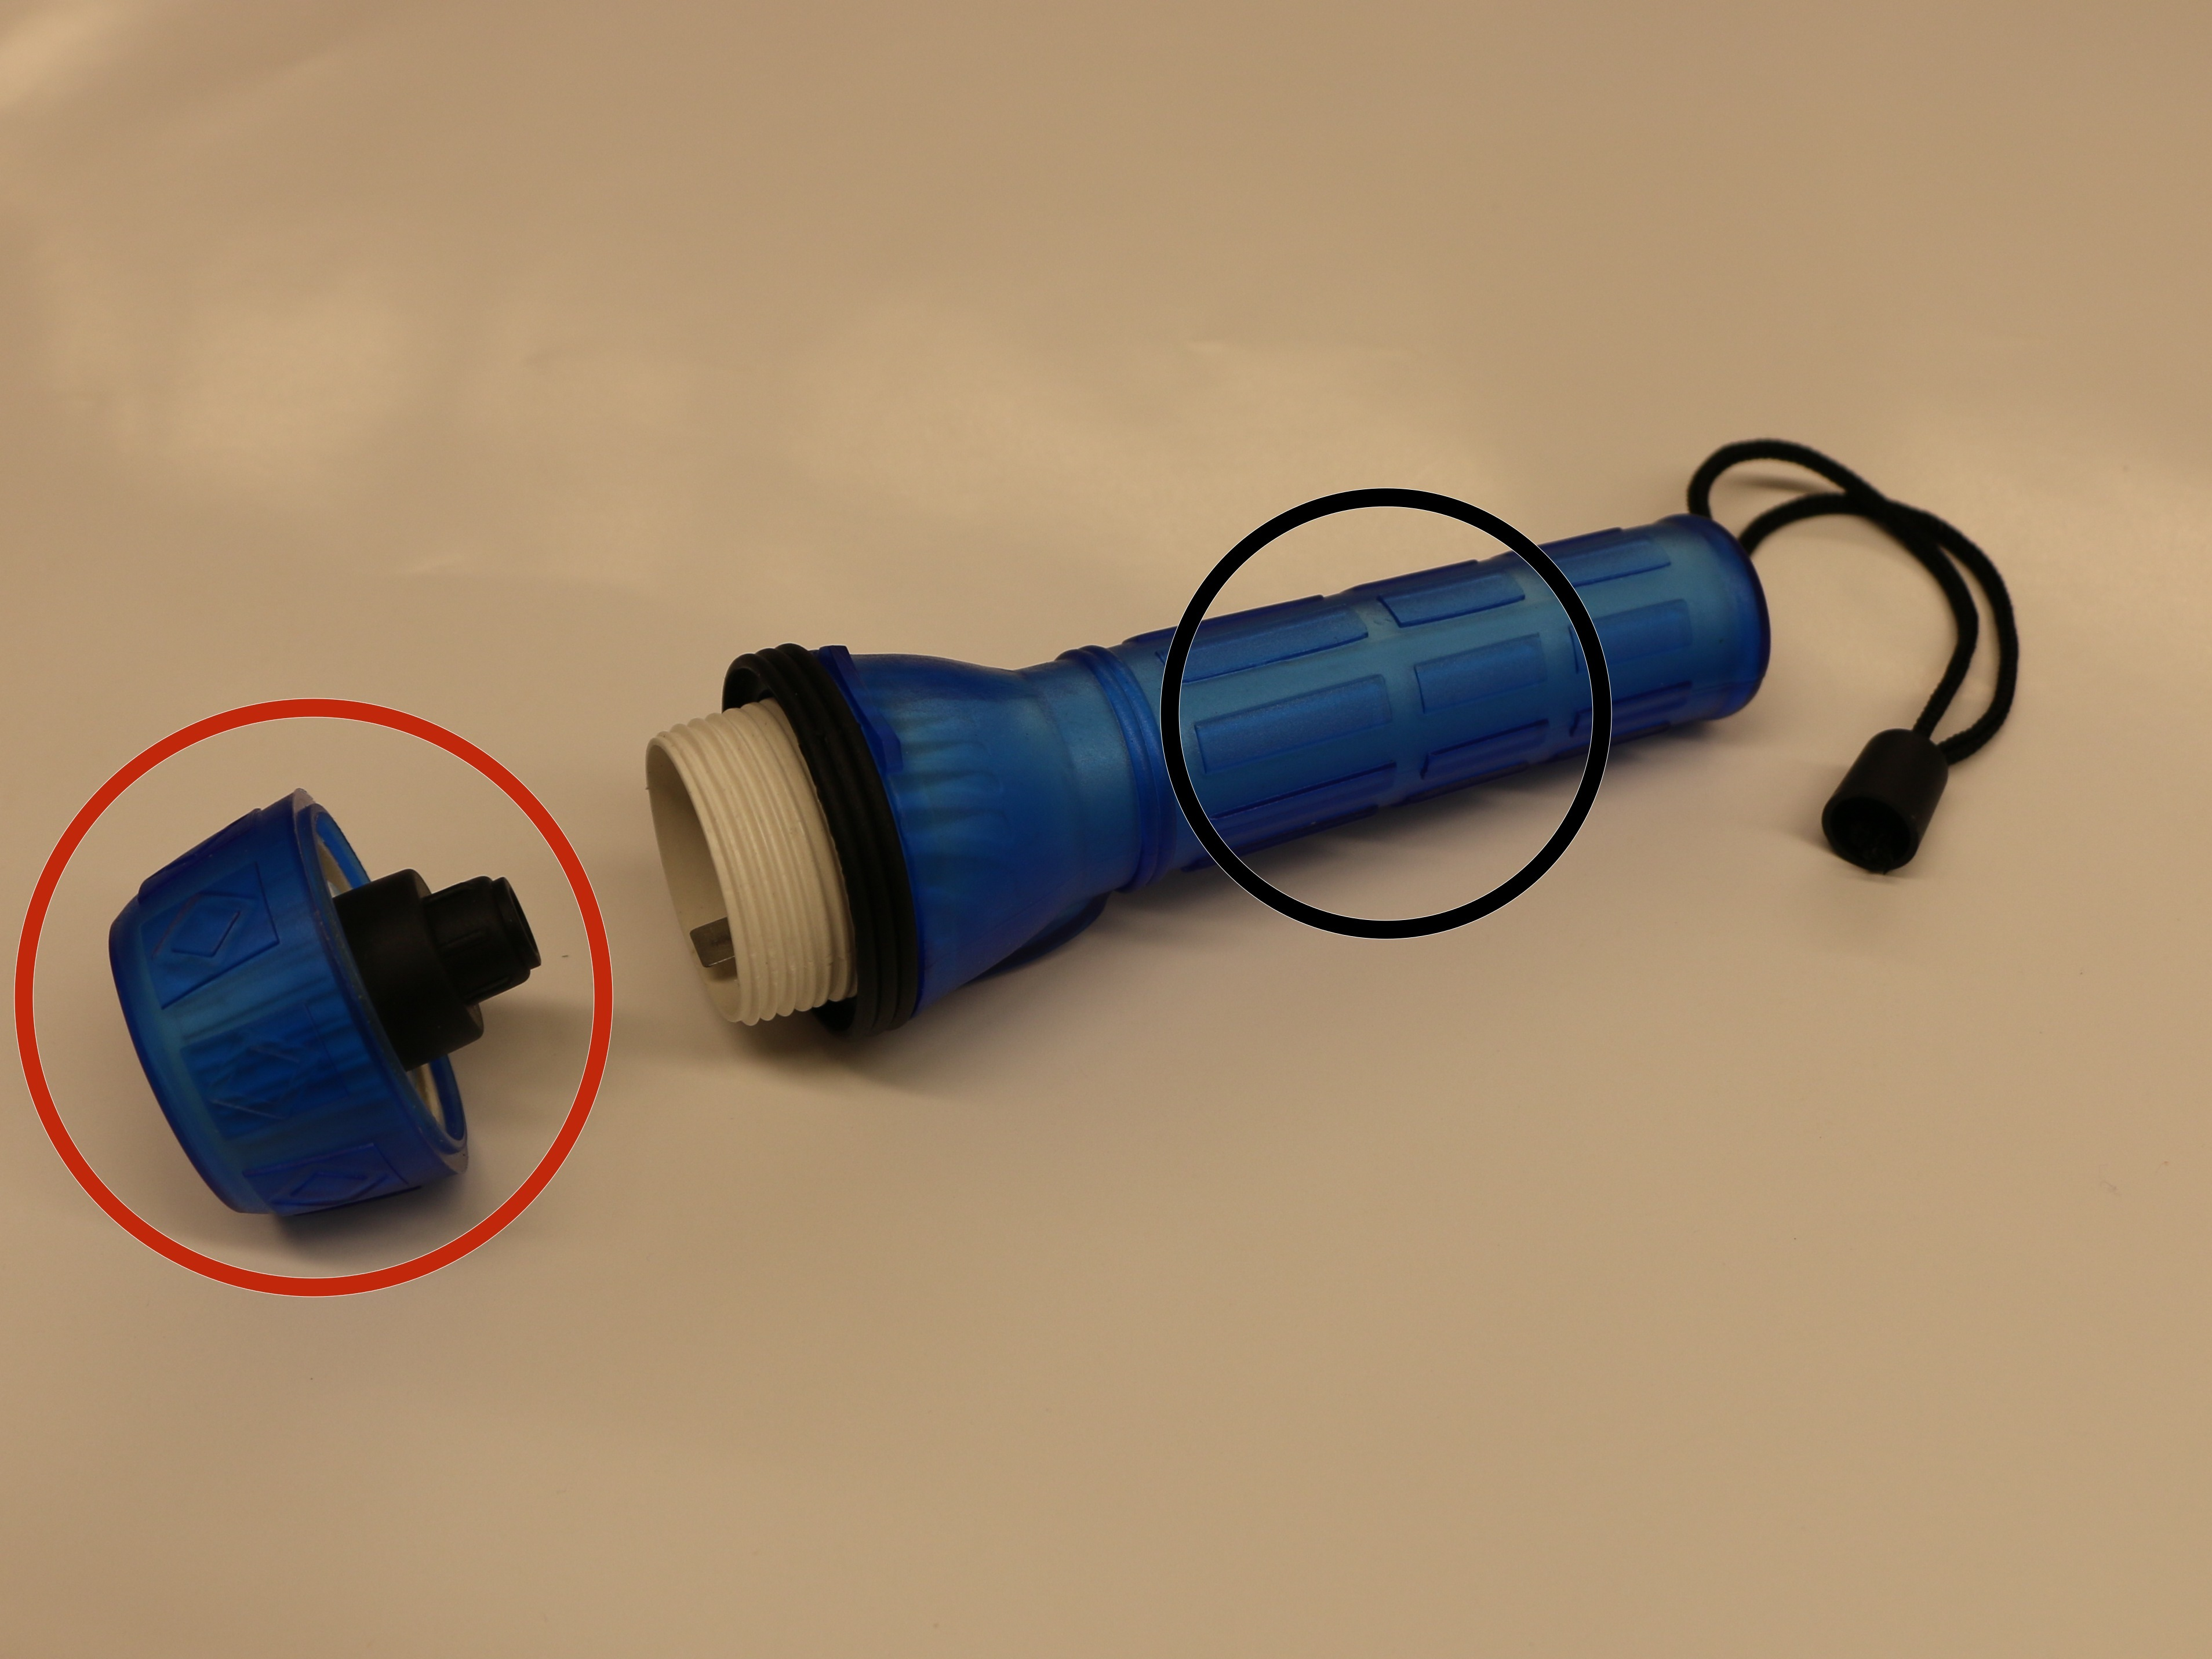 Flashlight Repair Ifixit Mini Maglite Diagram Disassembling Translucent Rubber Battery Power Component